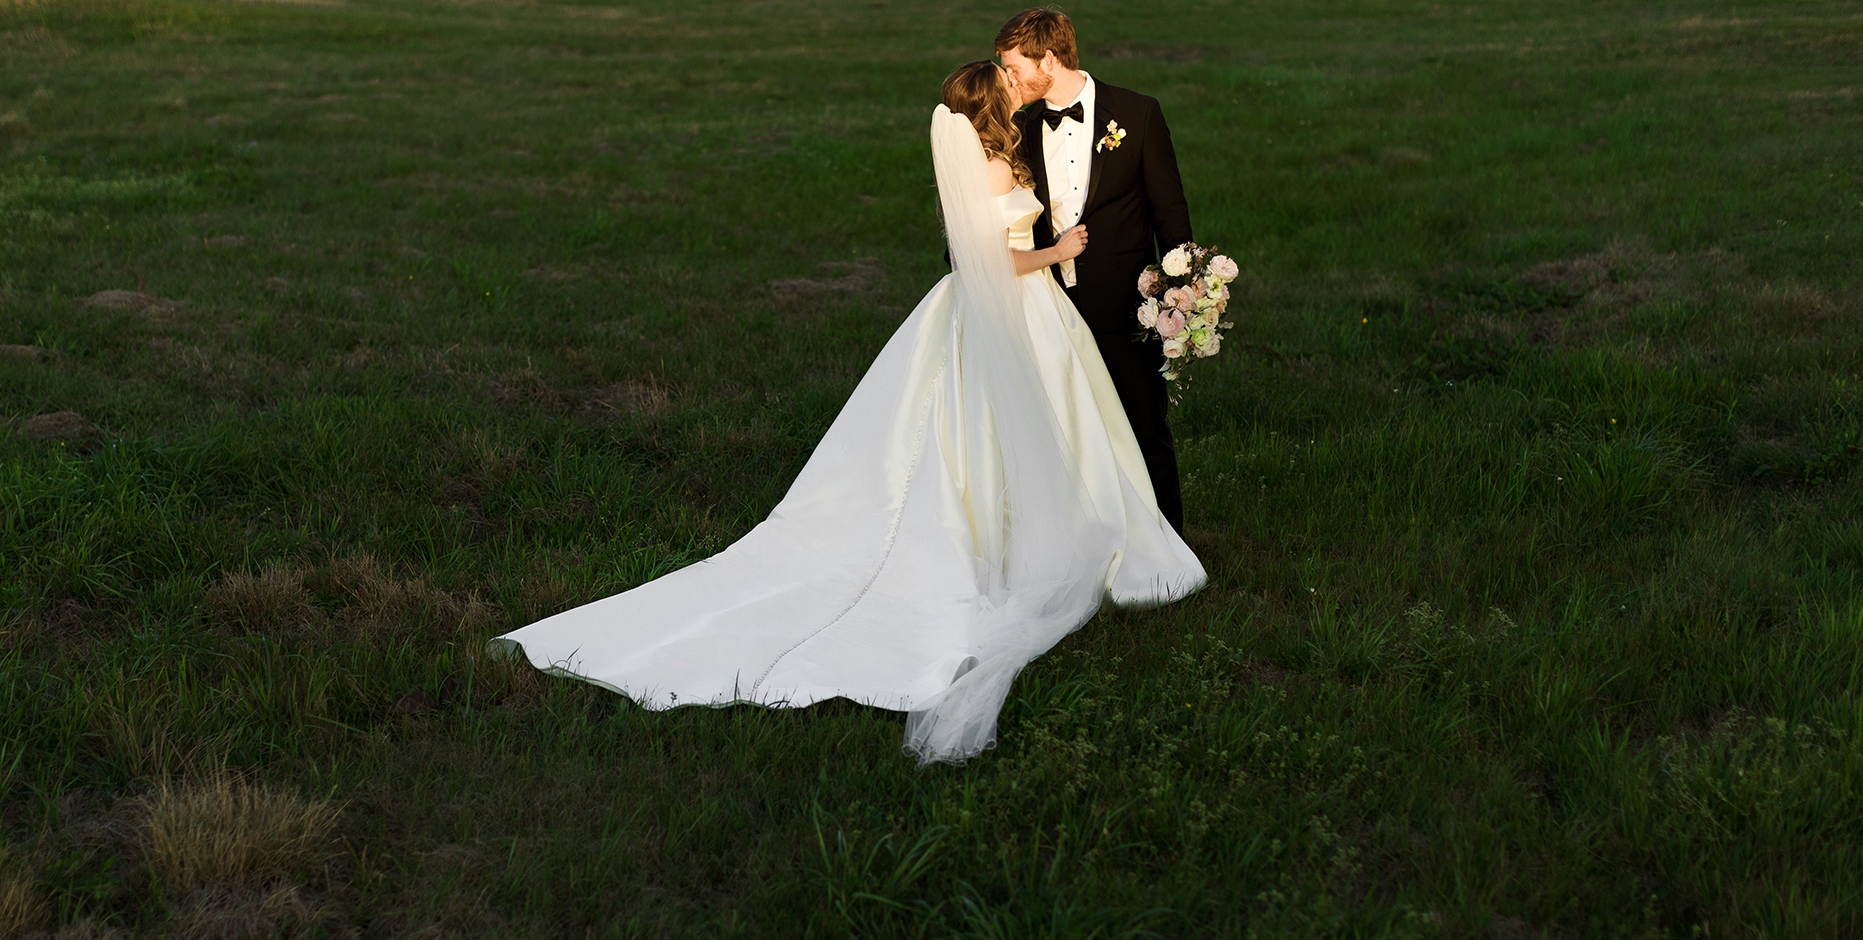 The bride and groom embrace each other in a green open field.